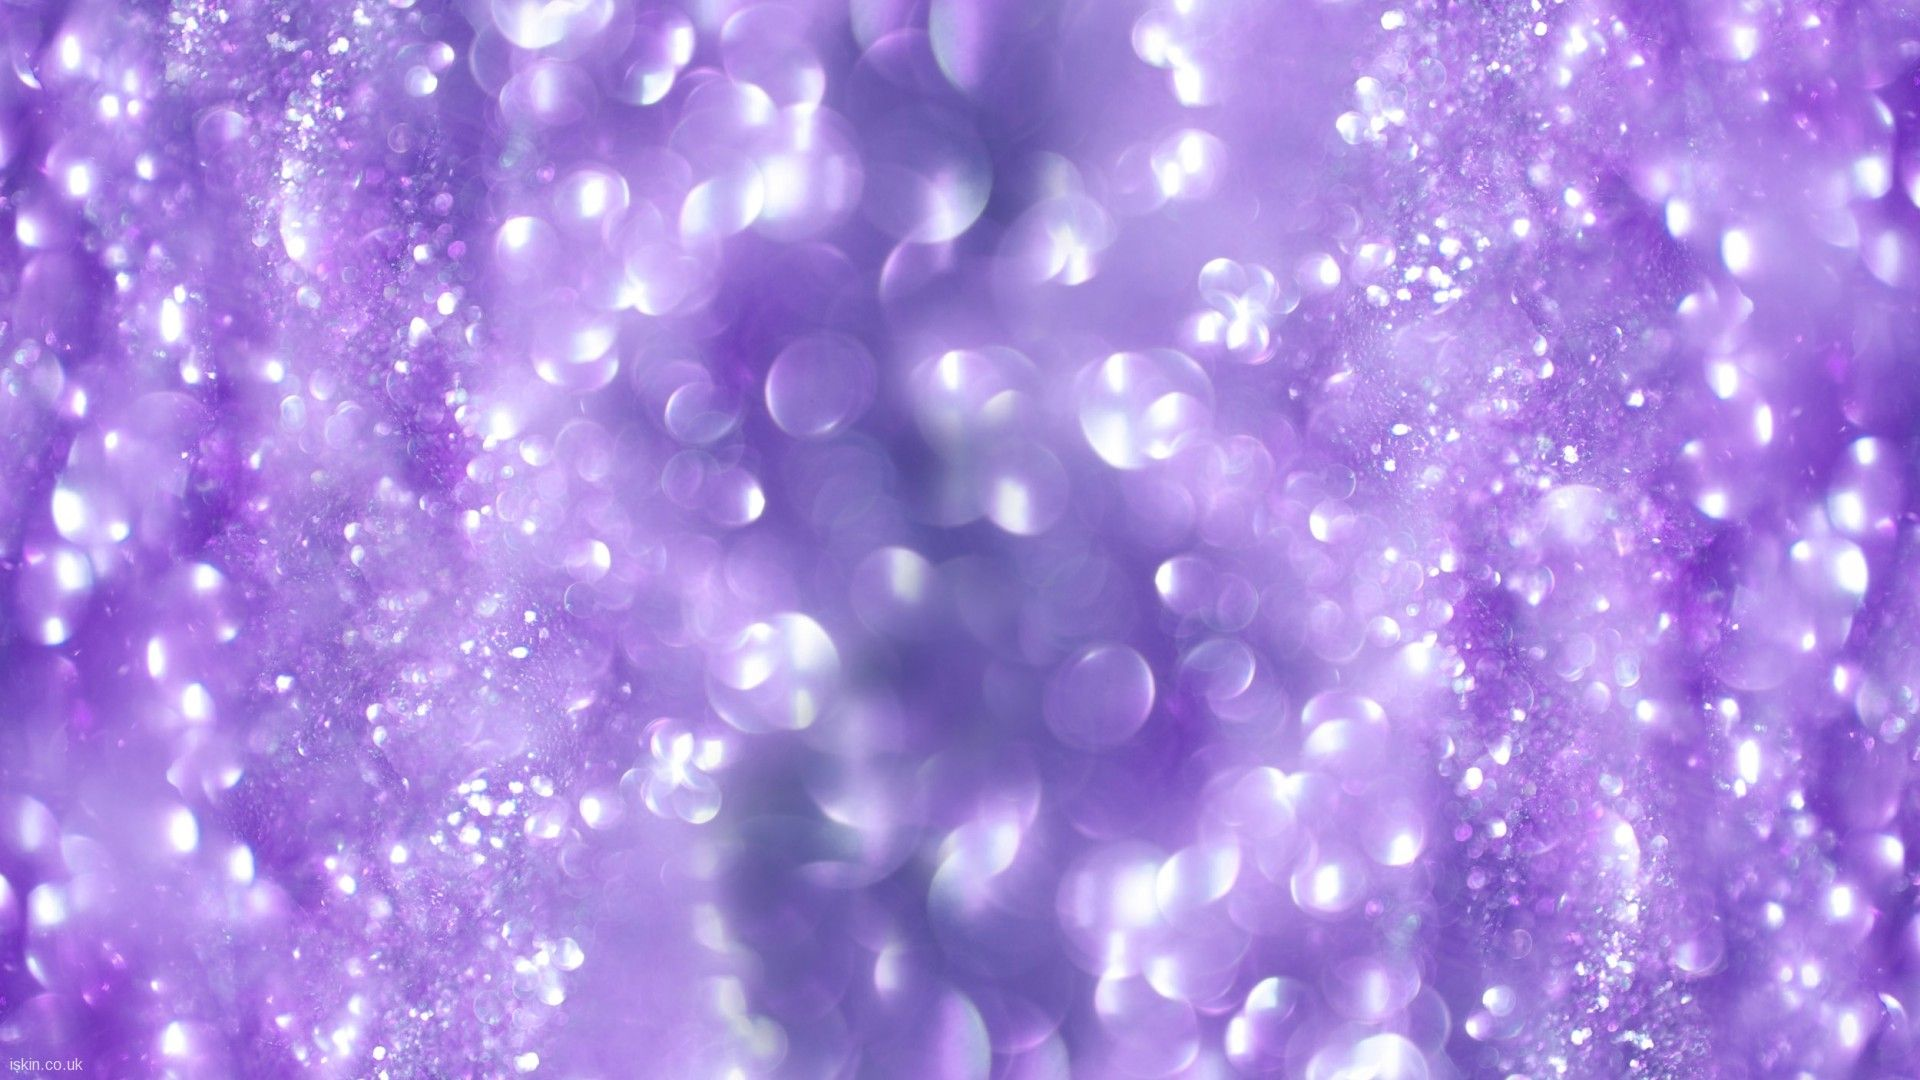 Sparkle wallpapers best wallpapers - Purple glitter wallpaper hd ...